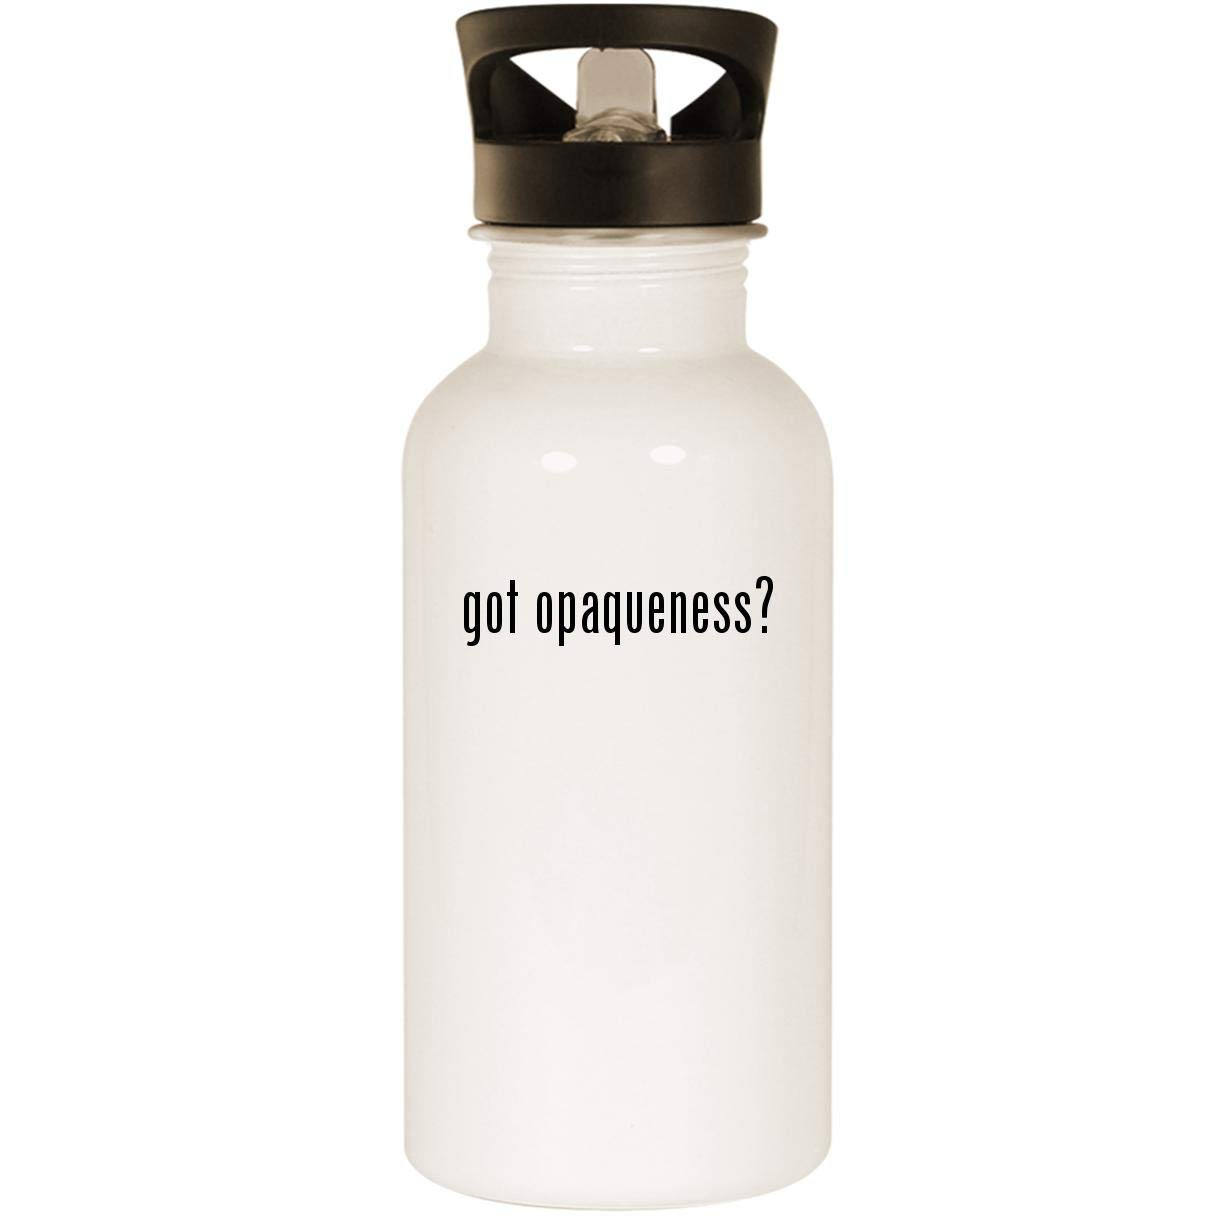 got opaqueness? - Stainless Steel 20oz Road Ready Water Bottle, White